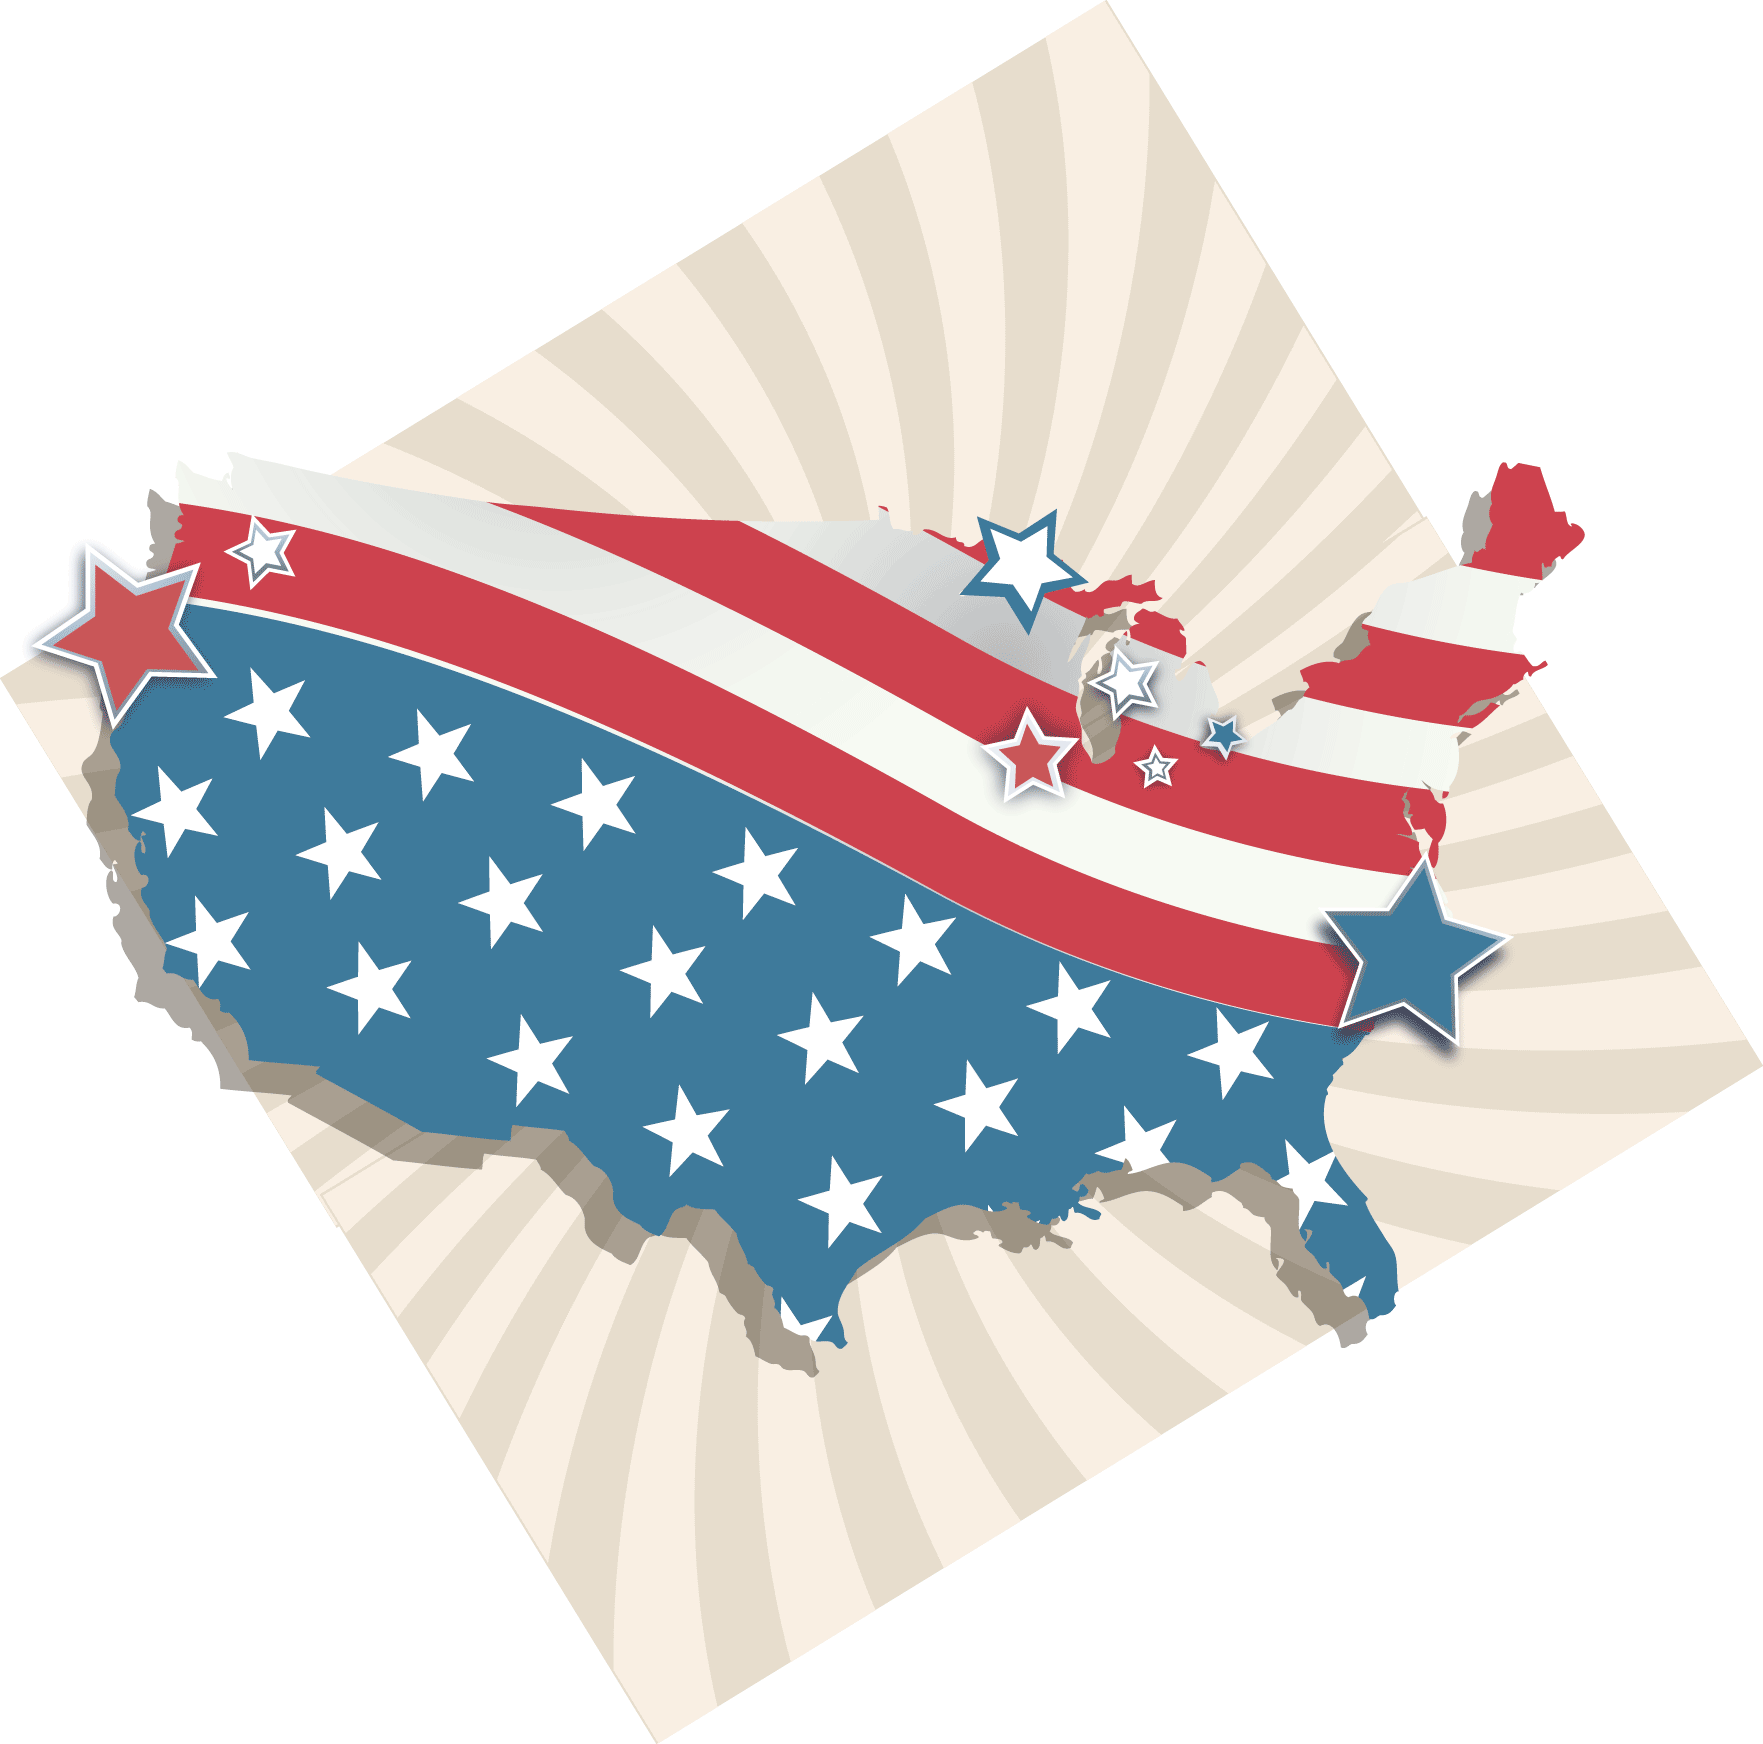 Most Sinful States in America